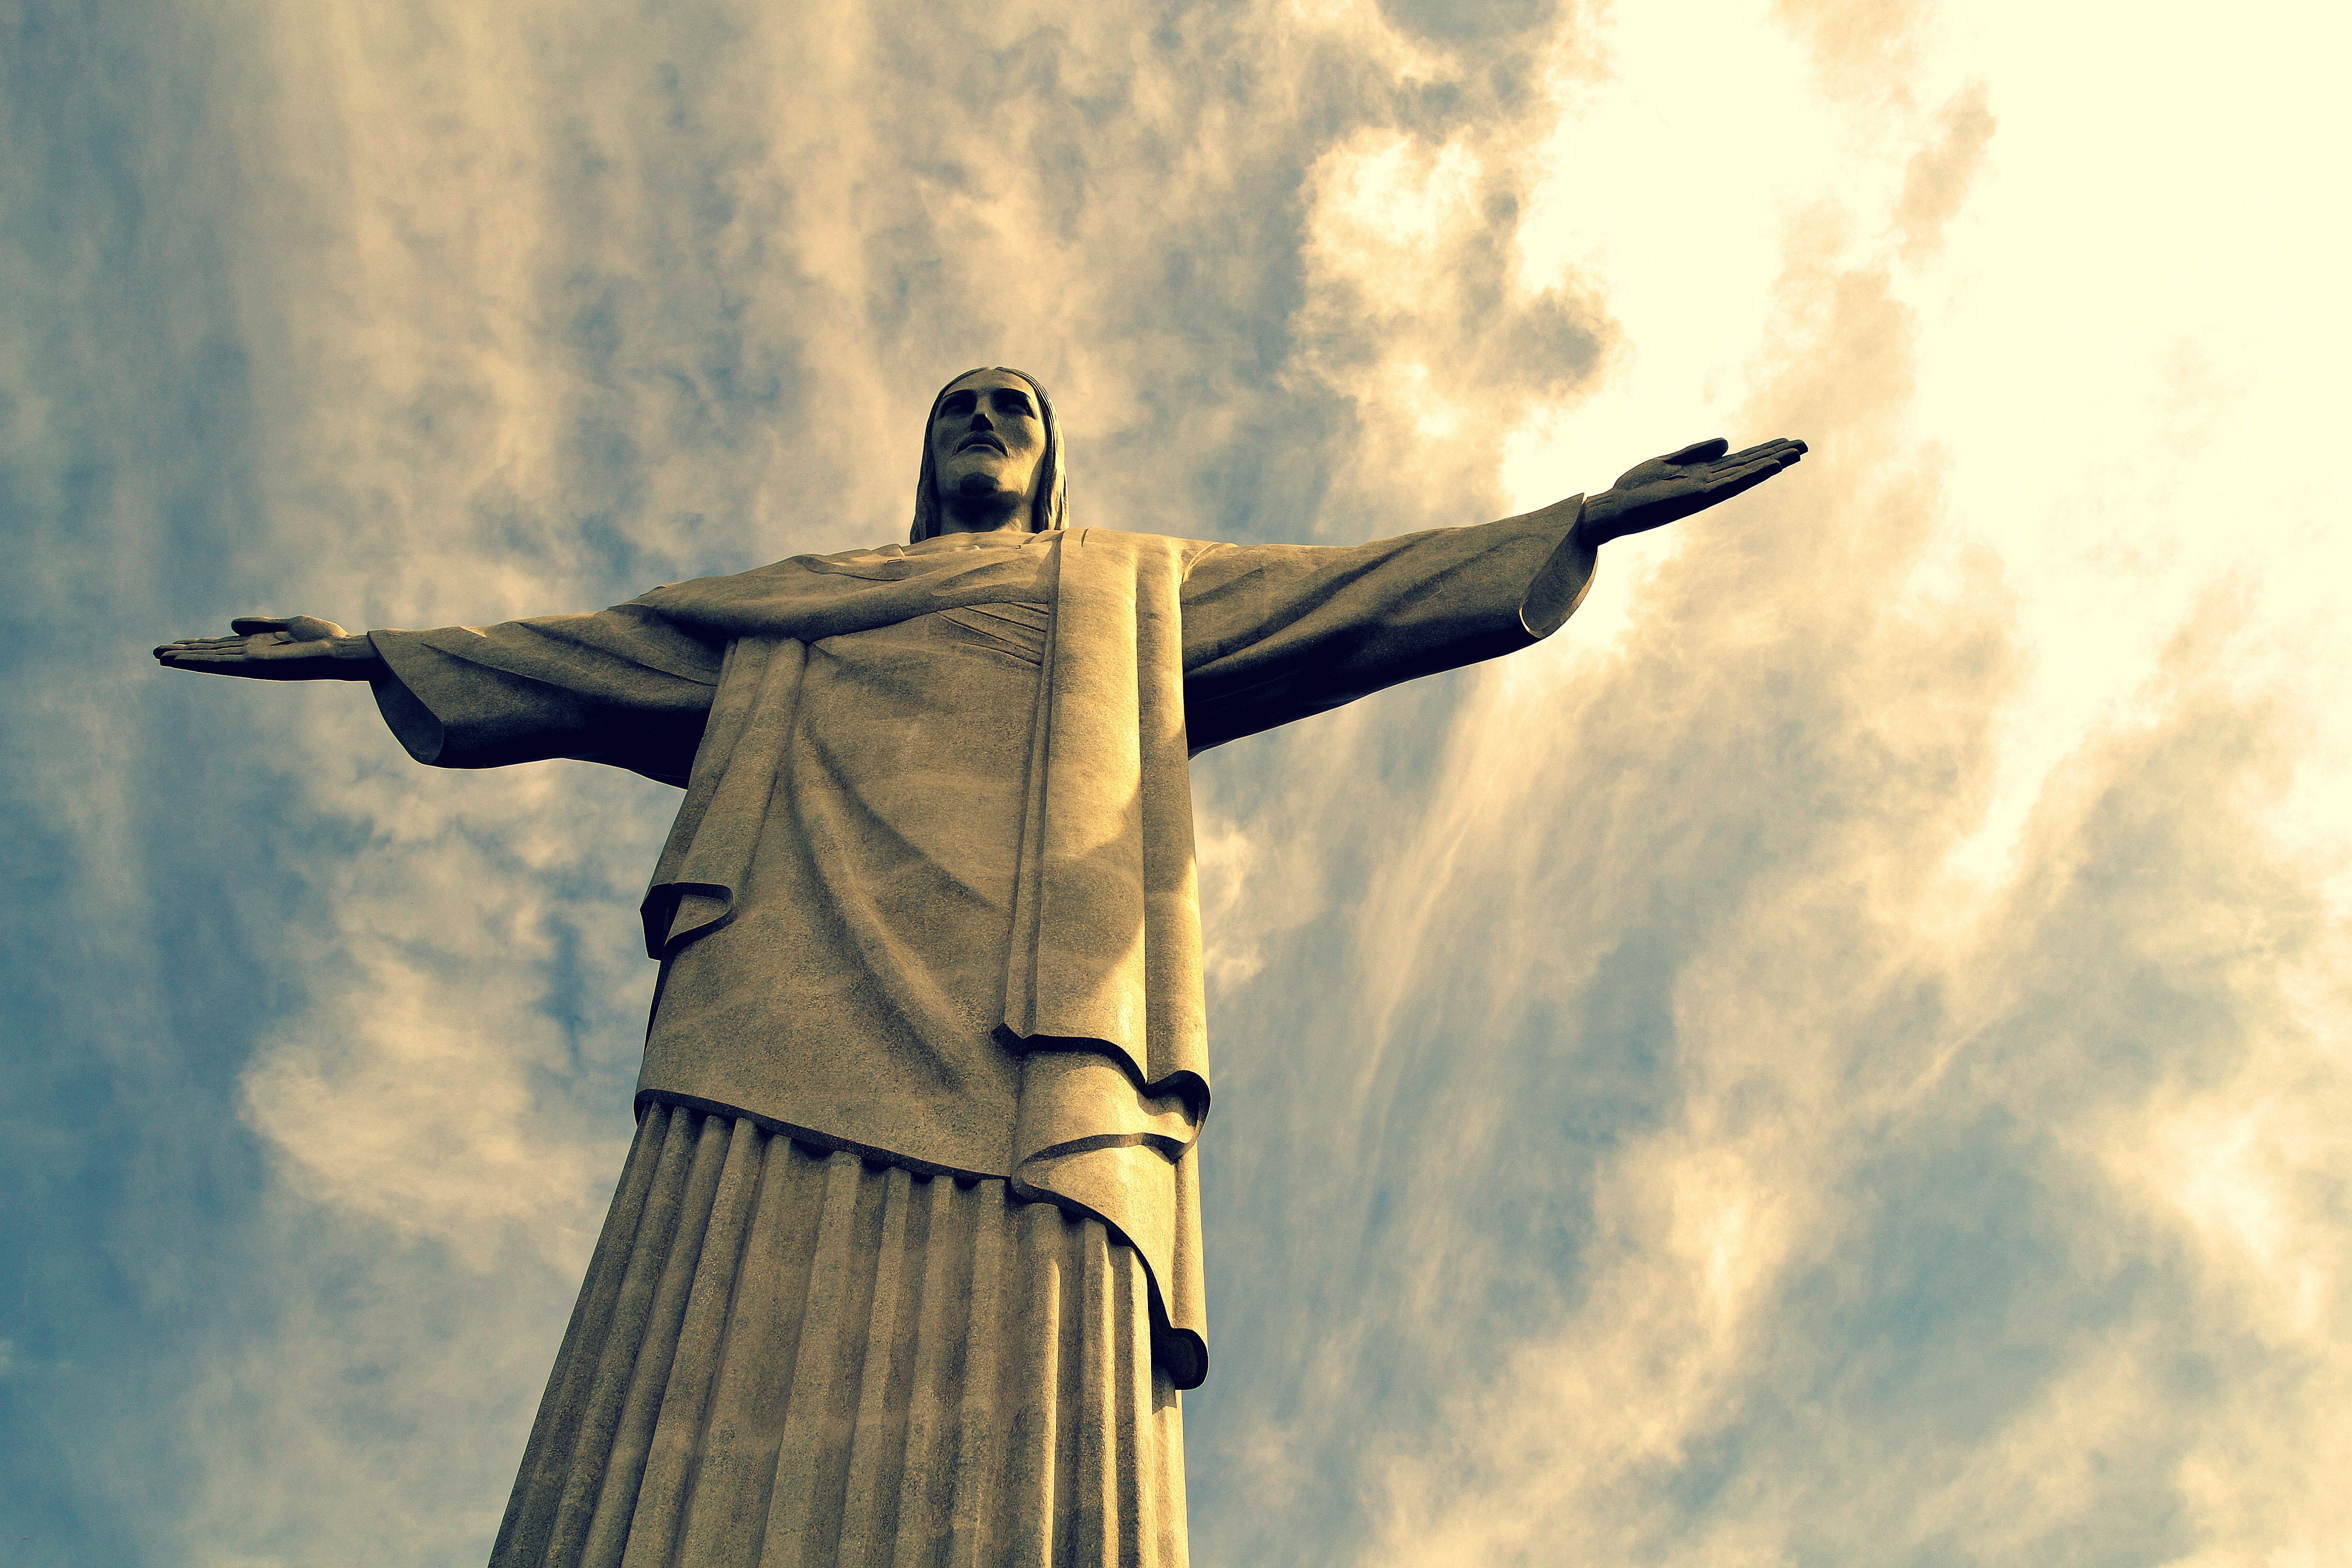 Fighter Aircraft in Christ the Redeemer